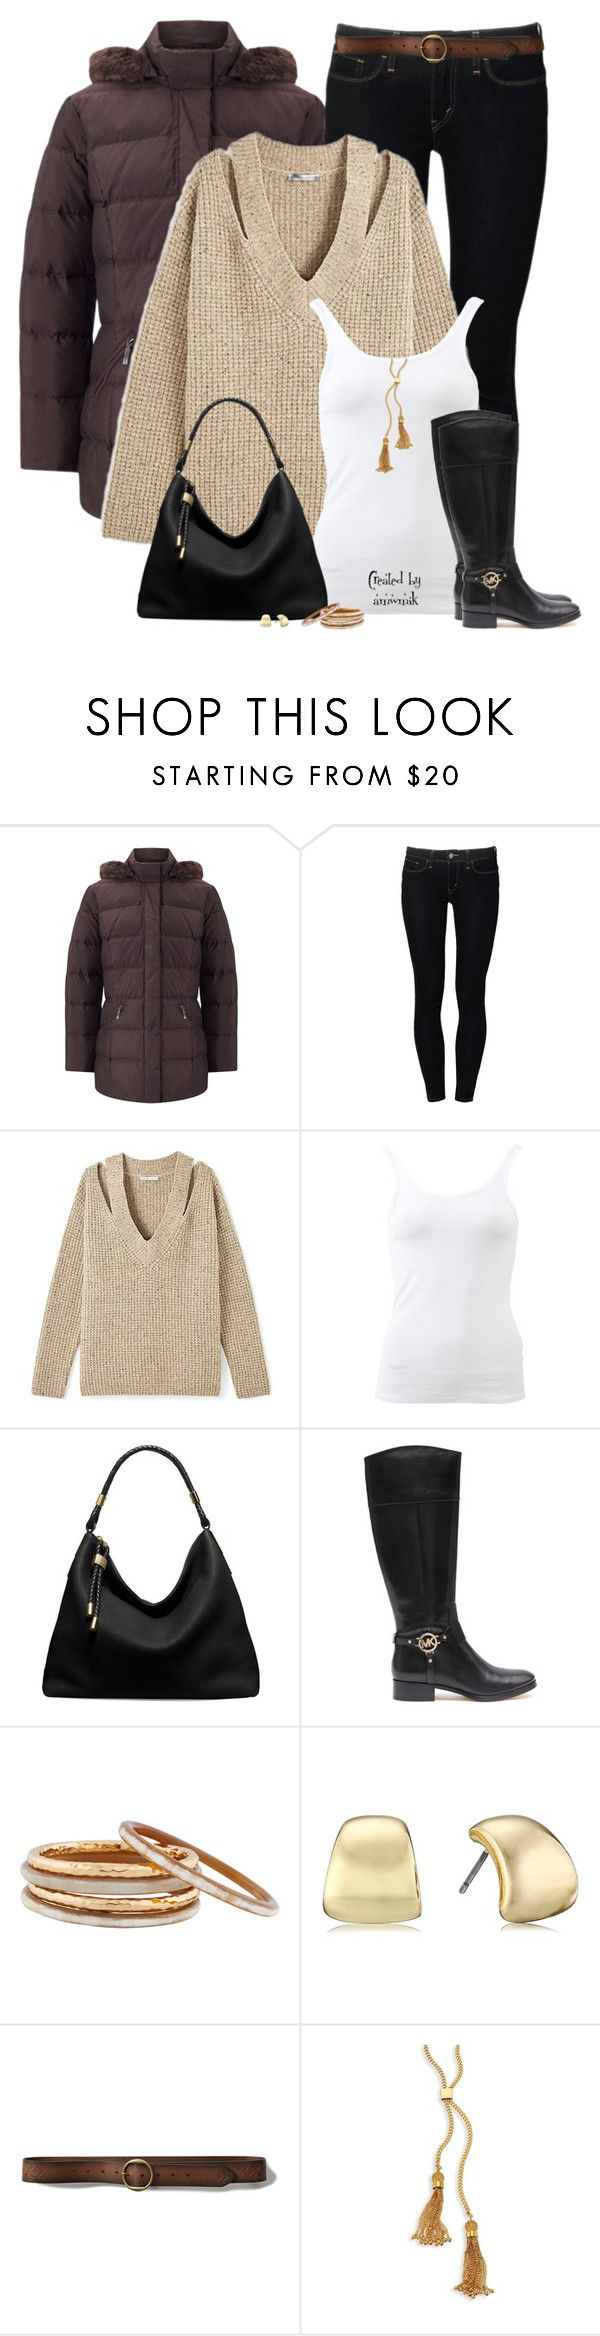 Best 25+ Abercrombie and fitch coats ideas on Pinterest ...